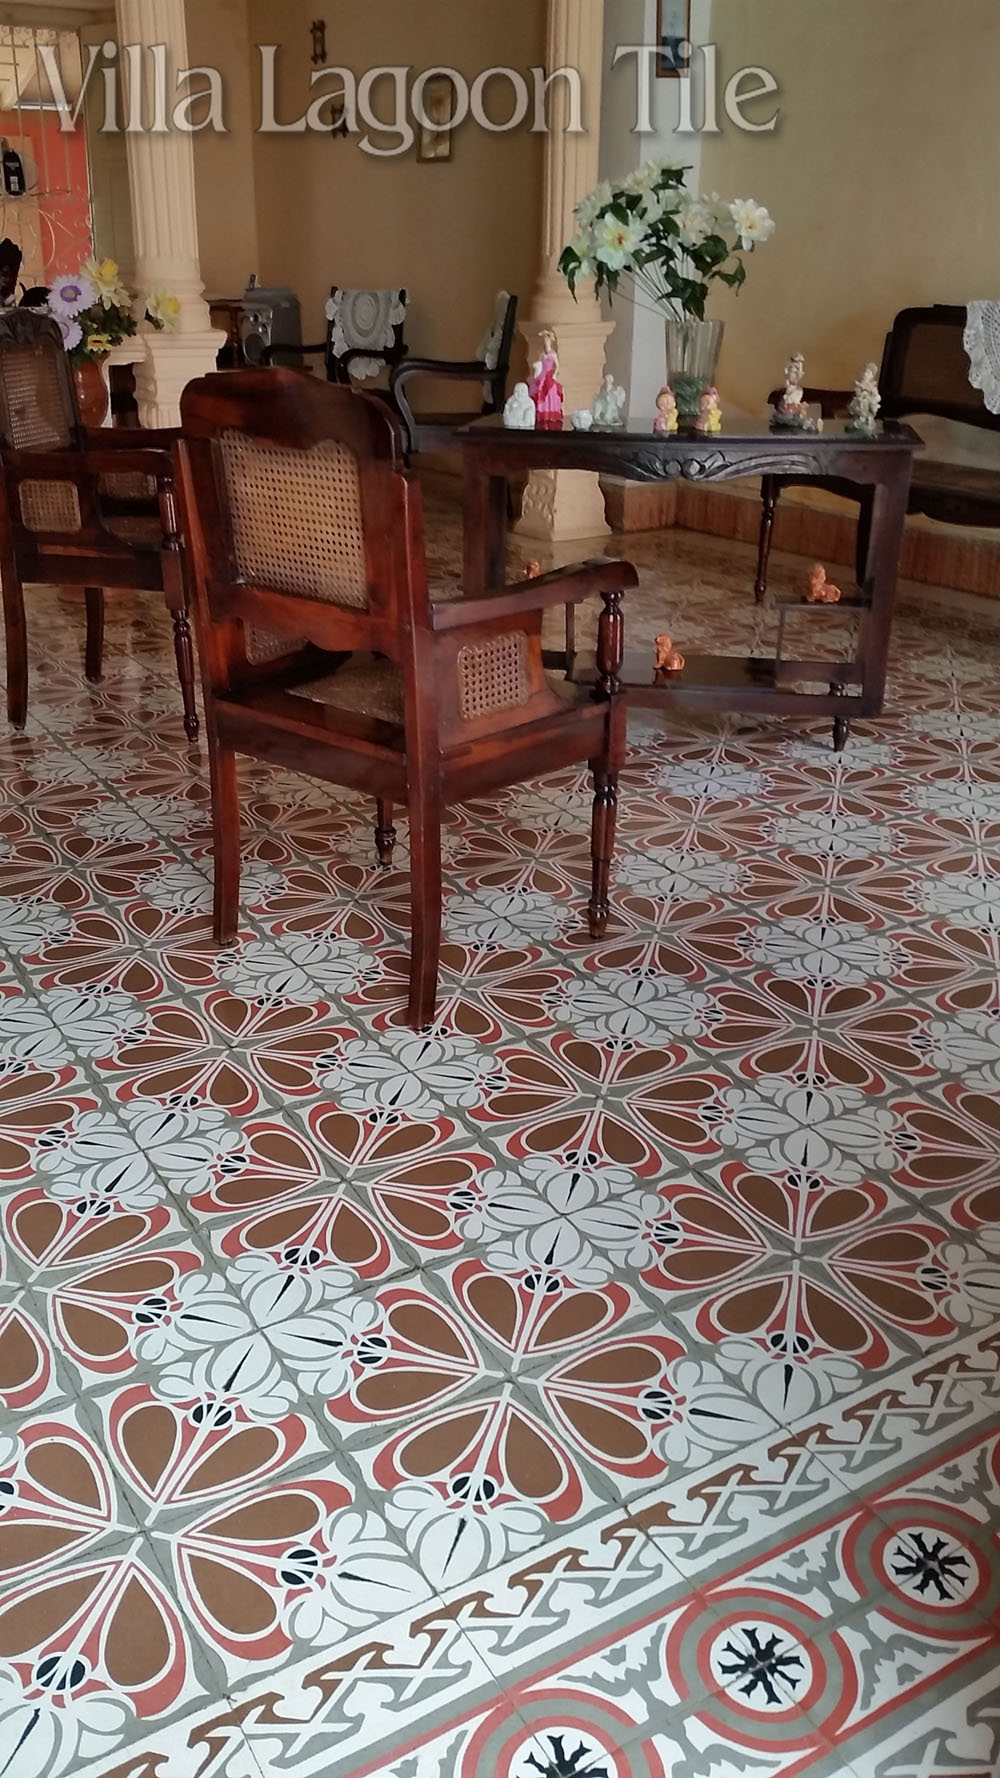 A lovely old Cuban home with intact cement tile floors.